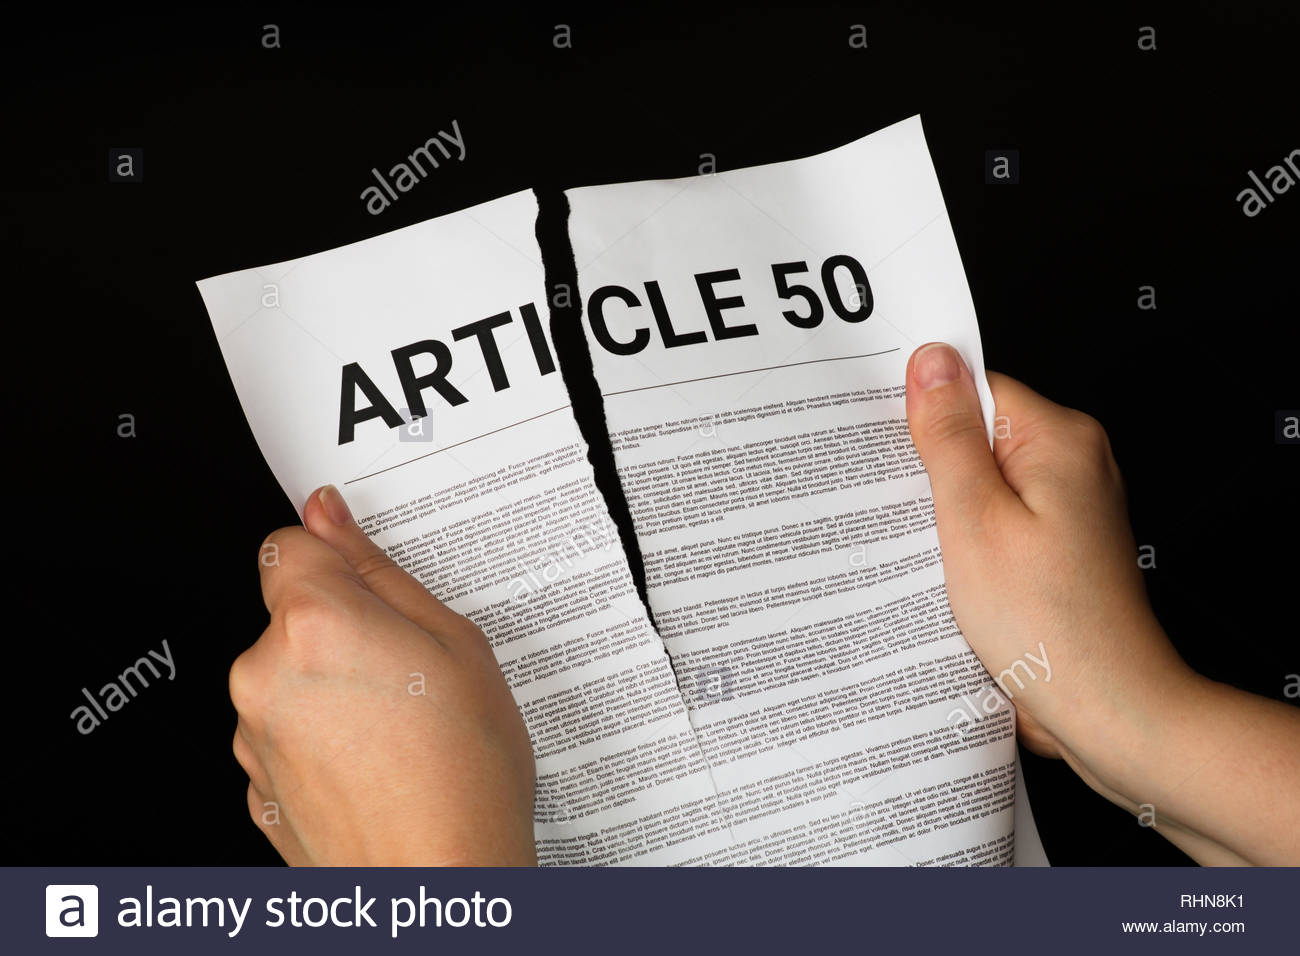 Brexit - ripping up article 50 (mock), revoke article 50, tearing up contract Stock Photo